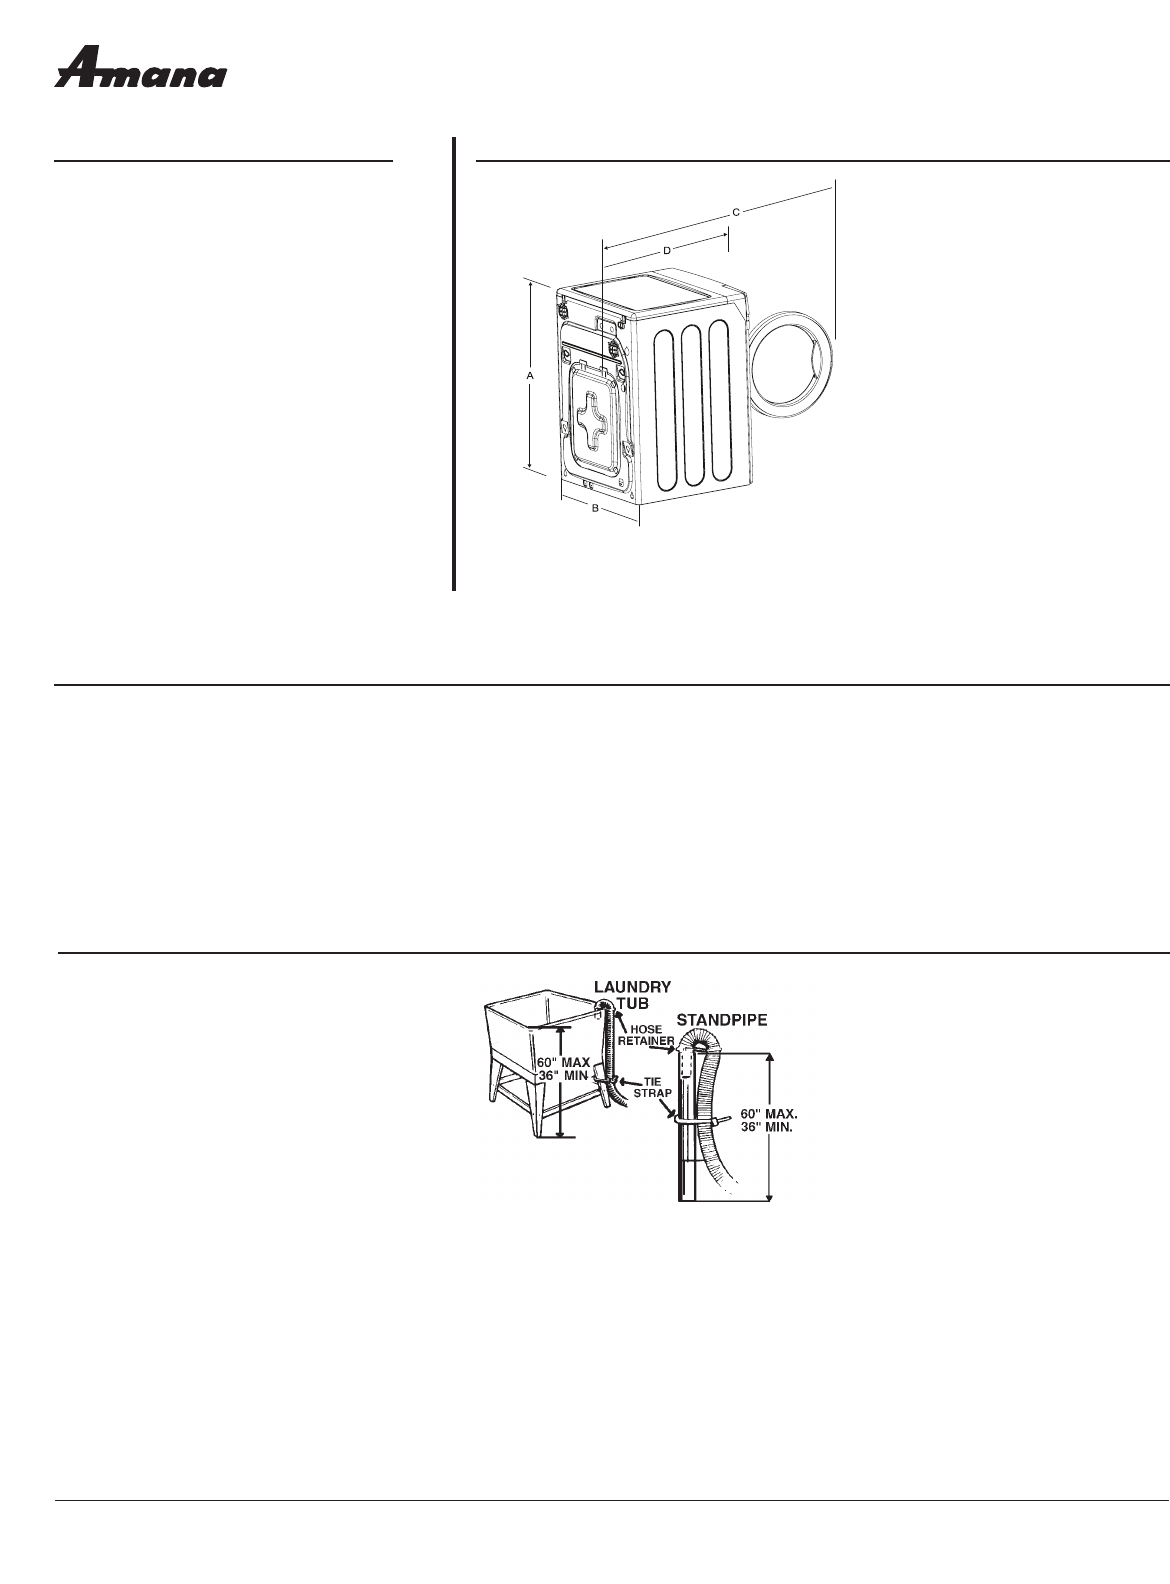 amana washer nfw7200tw user guide manualsonline com rh laundry manualsonline com amana washer nfw7200tw parts diagram amana washing machine nfw7200tw manual